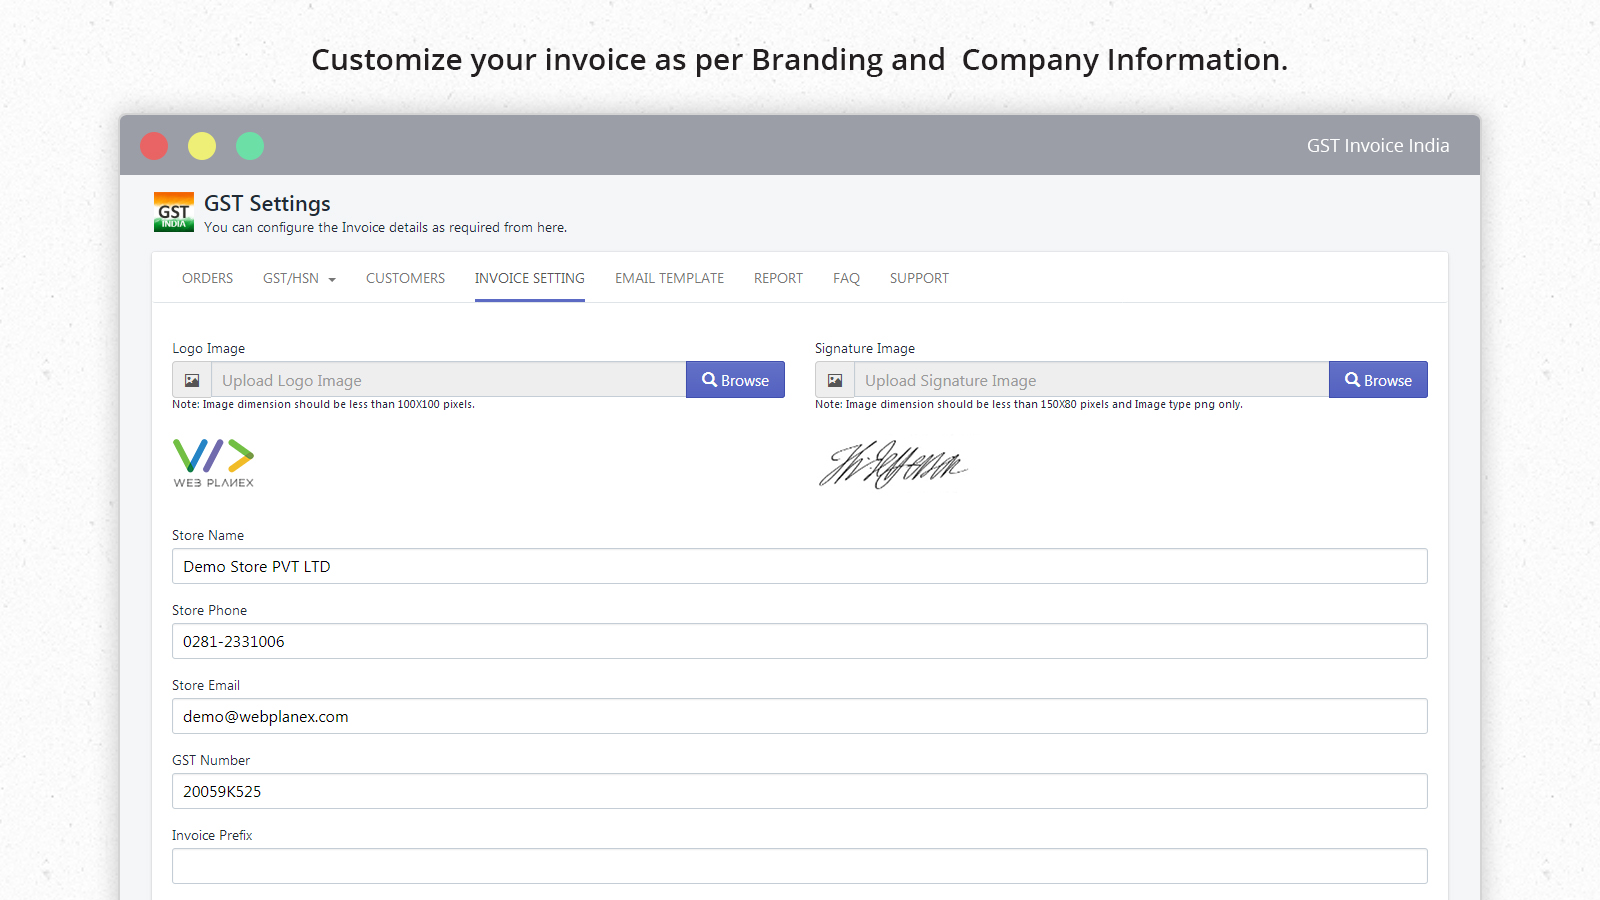 GST Invoice India Ecommerce Plugins For Online Stores Shopify - Sell your invoices